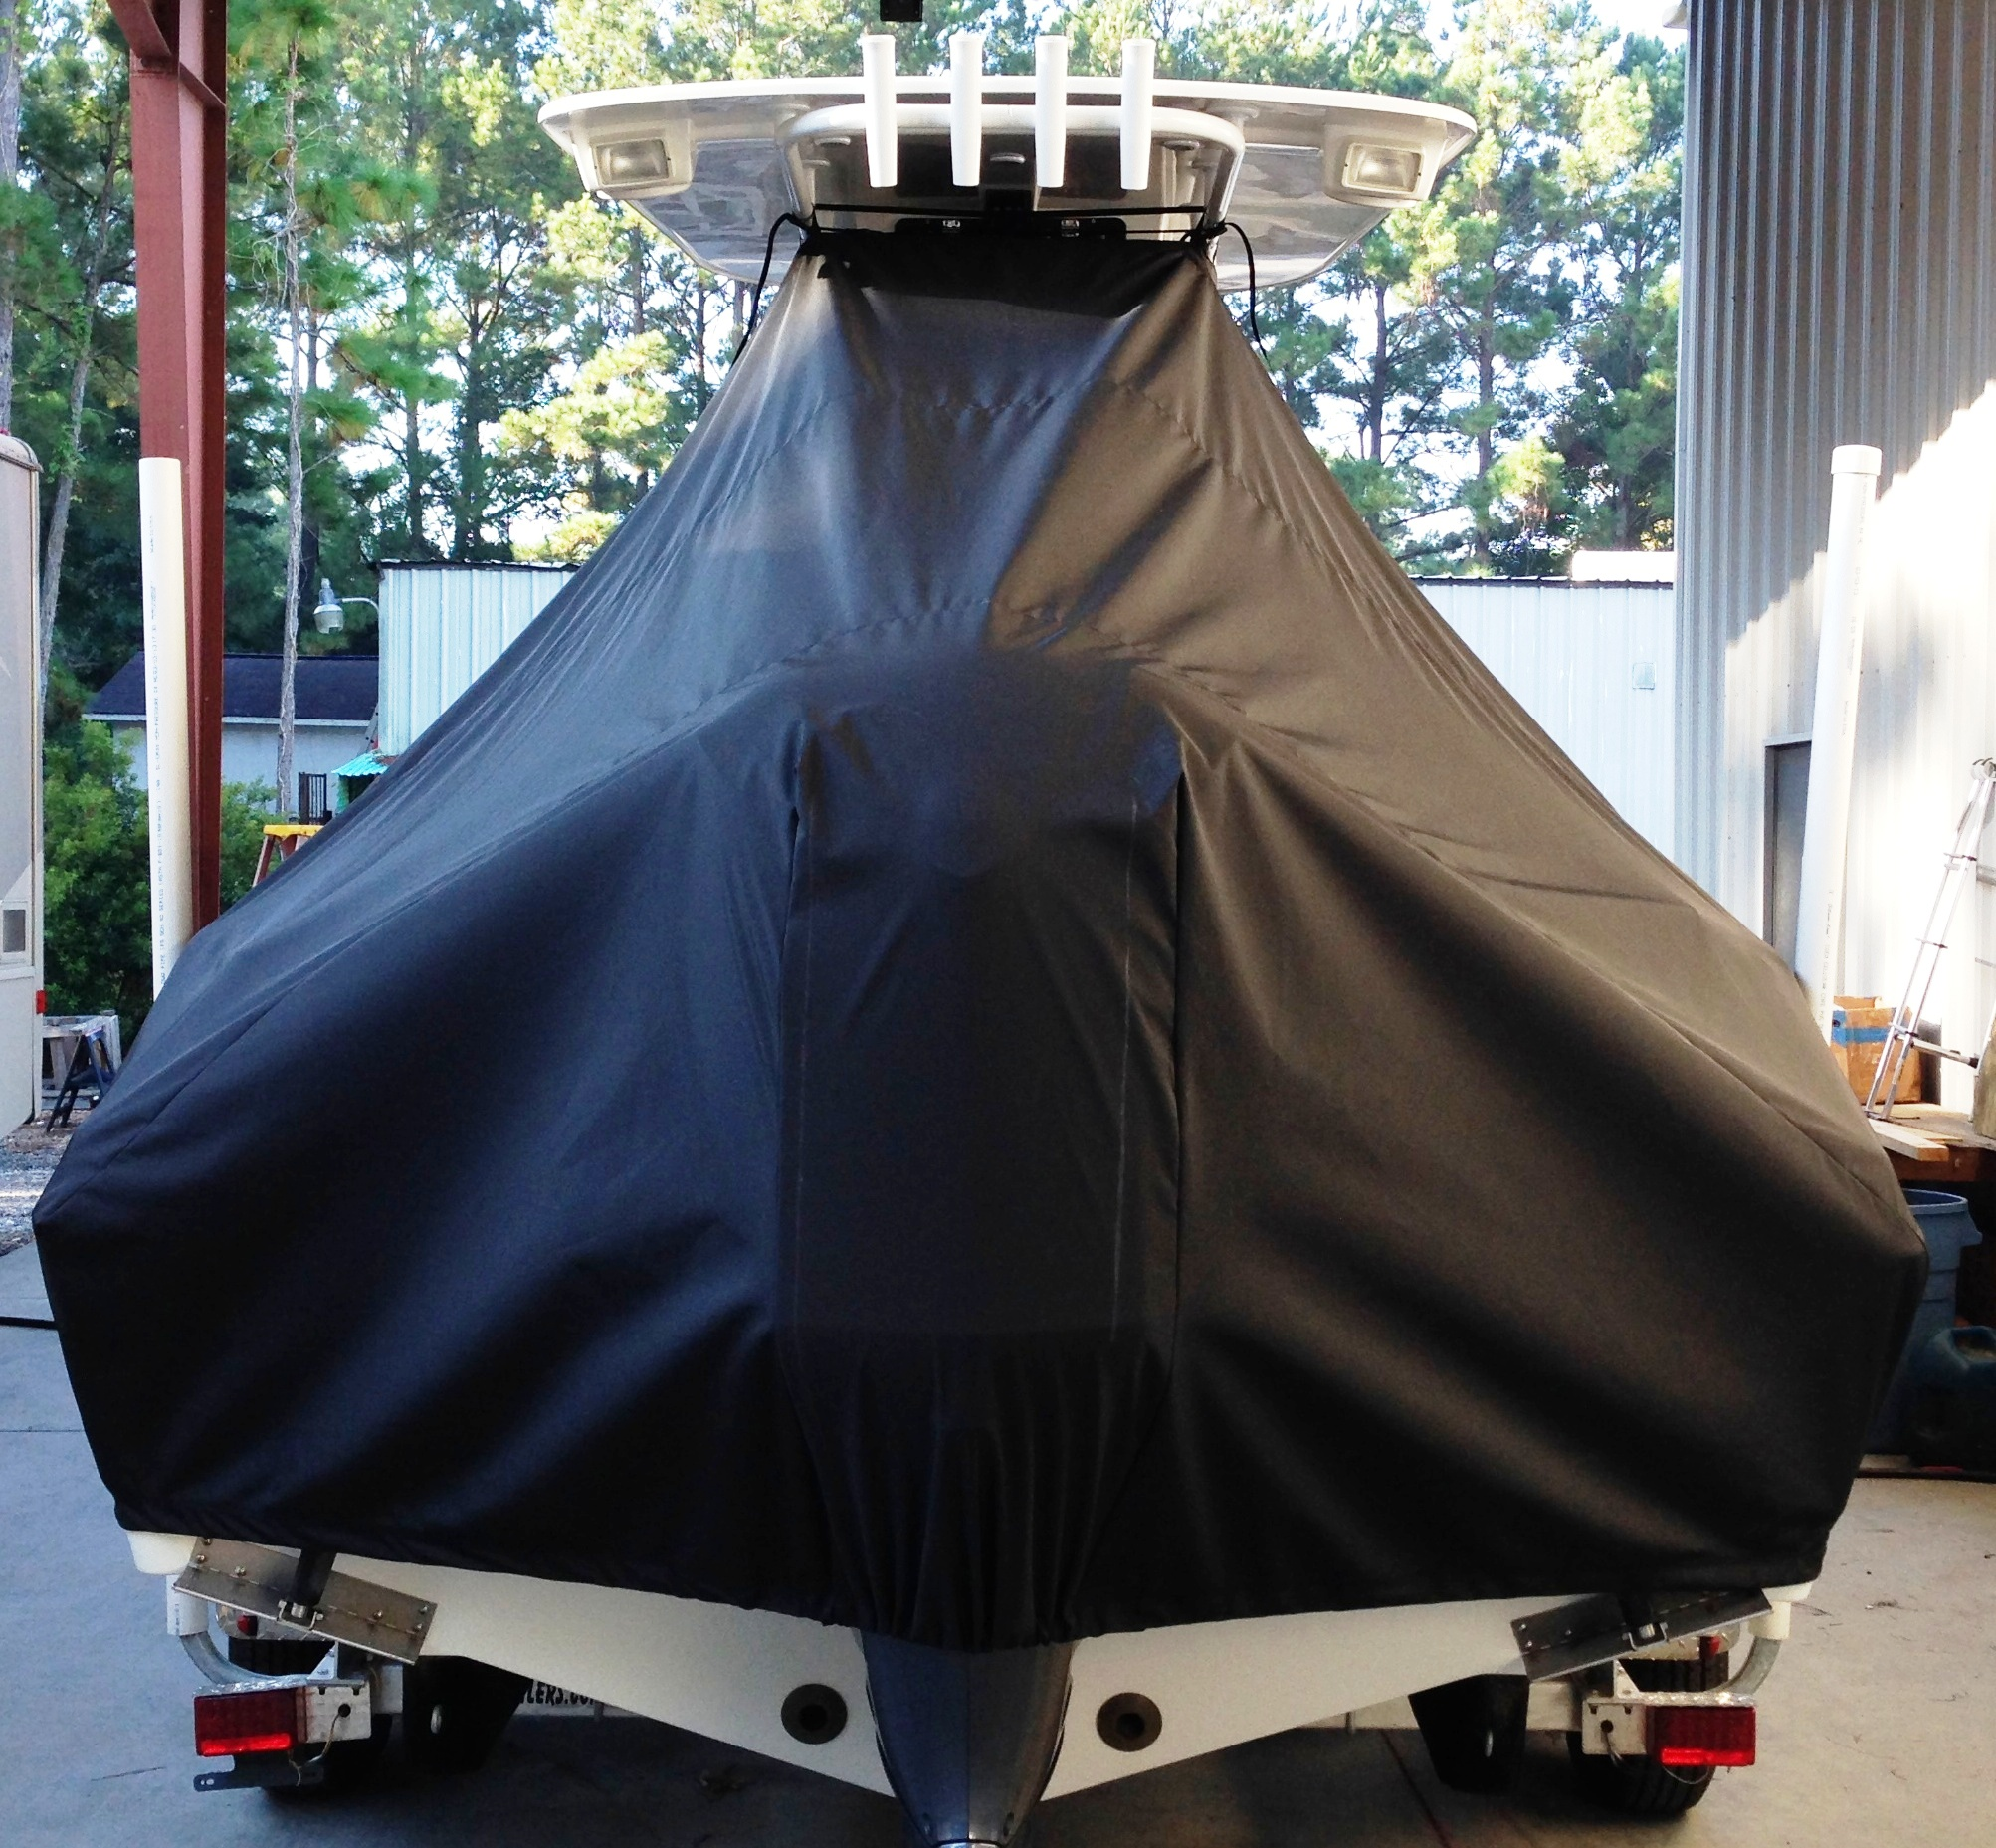 NauticStar 22XS, 20xx, TTopCovers™ T-Top boat cover rear